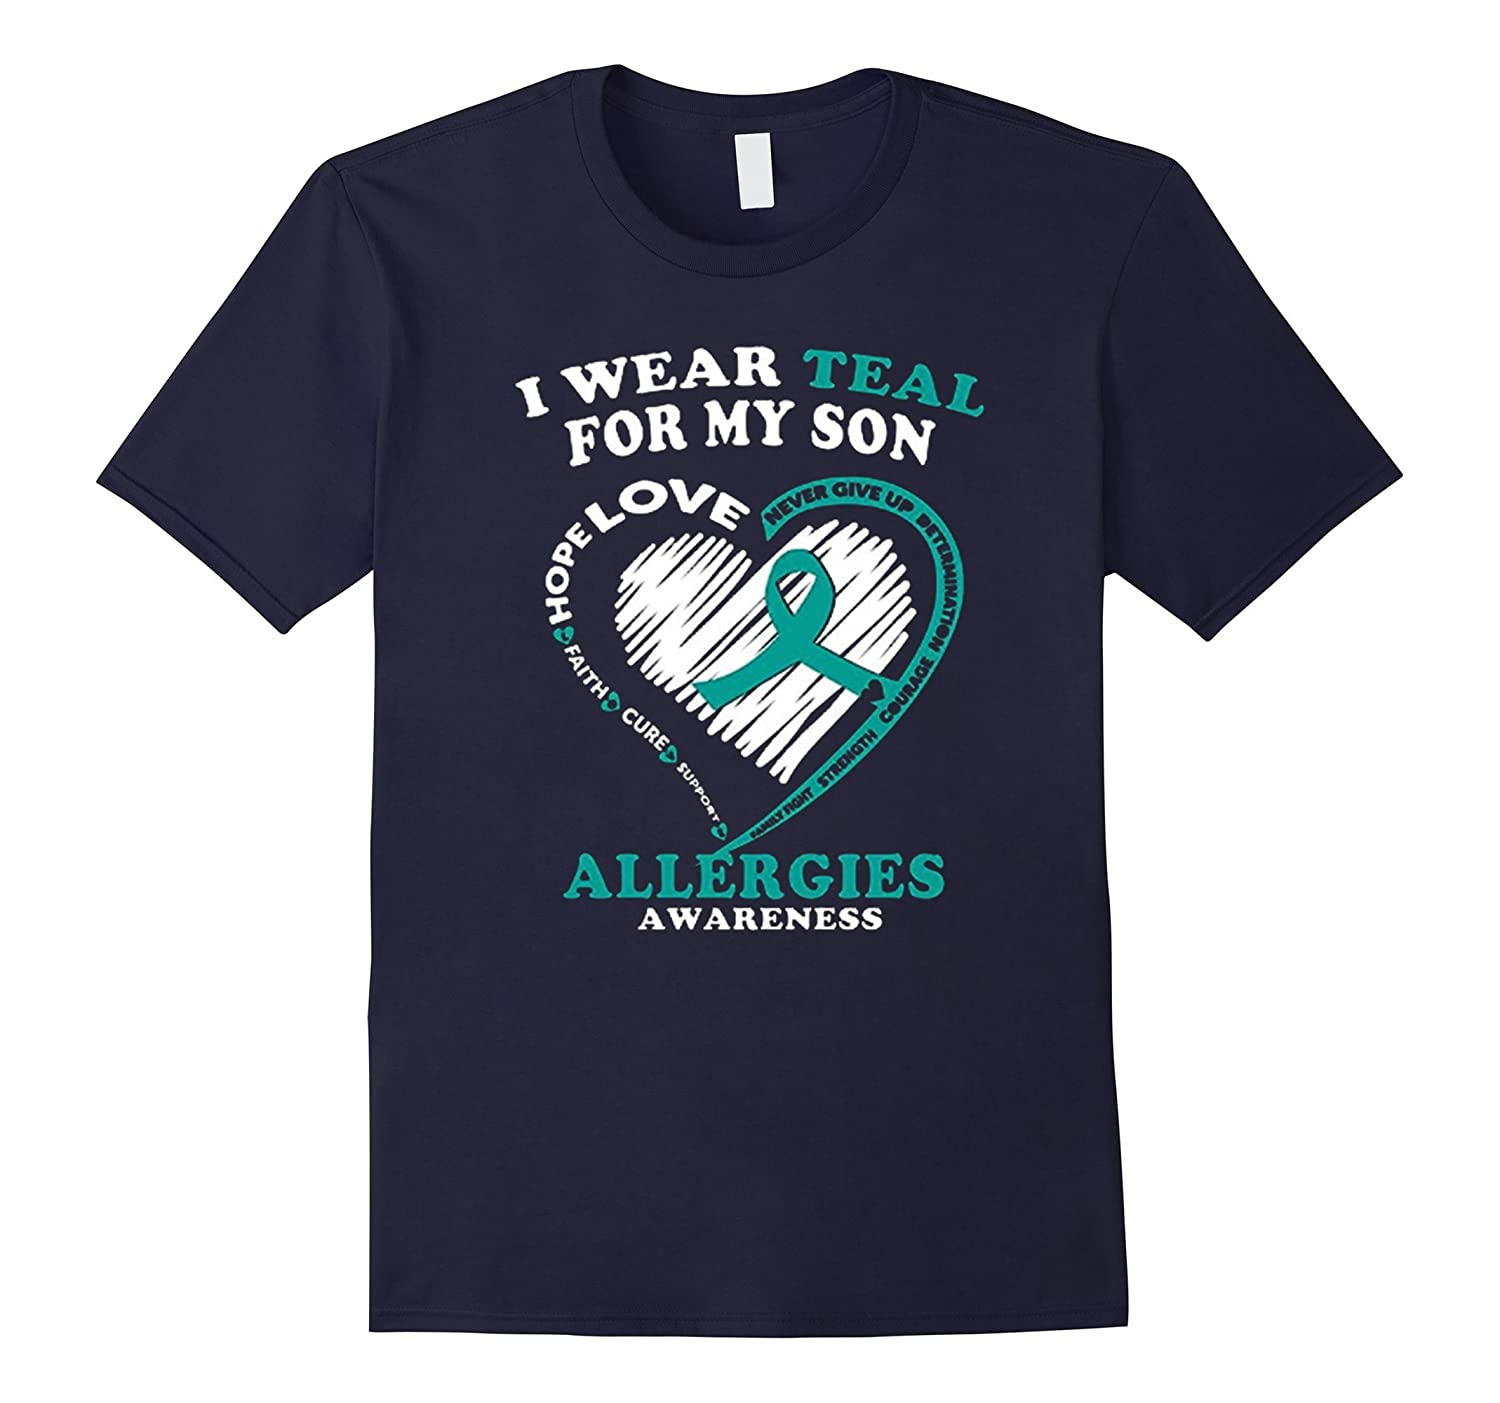 Allergies Awareness T Shirt - I Wear Teal For My Son-BN